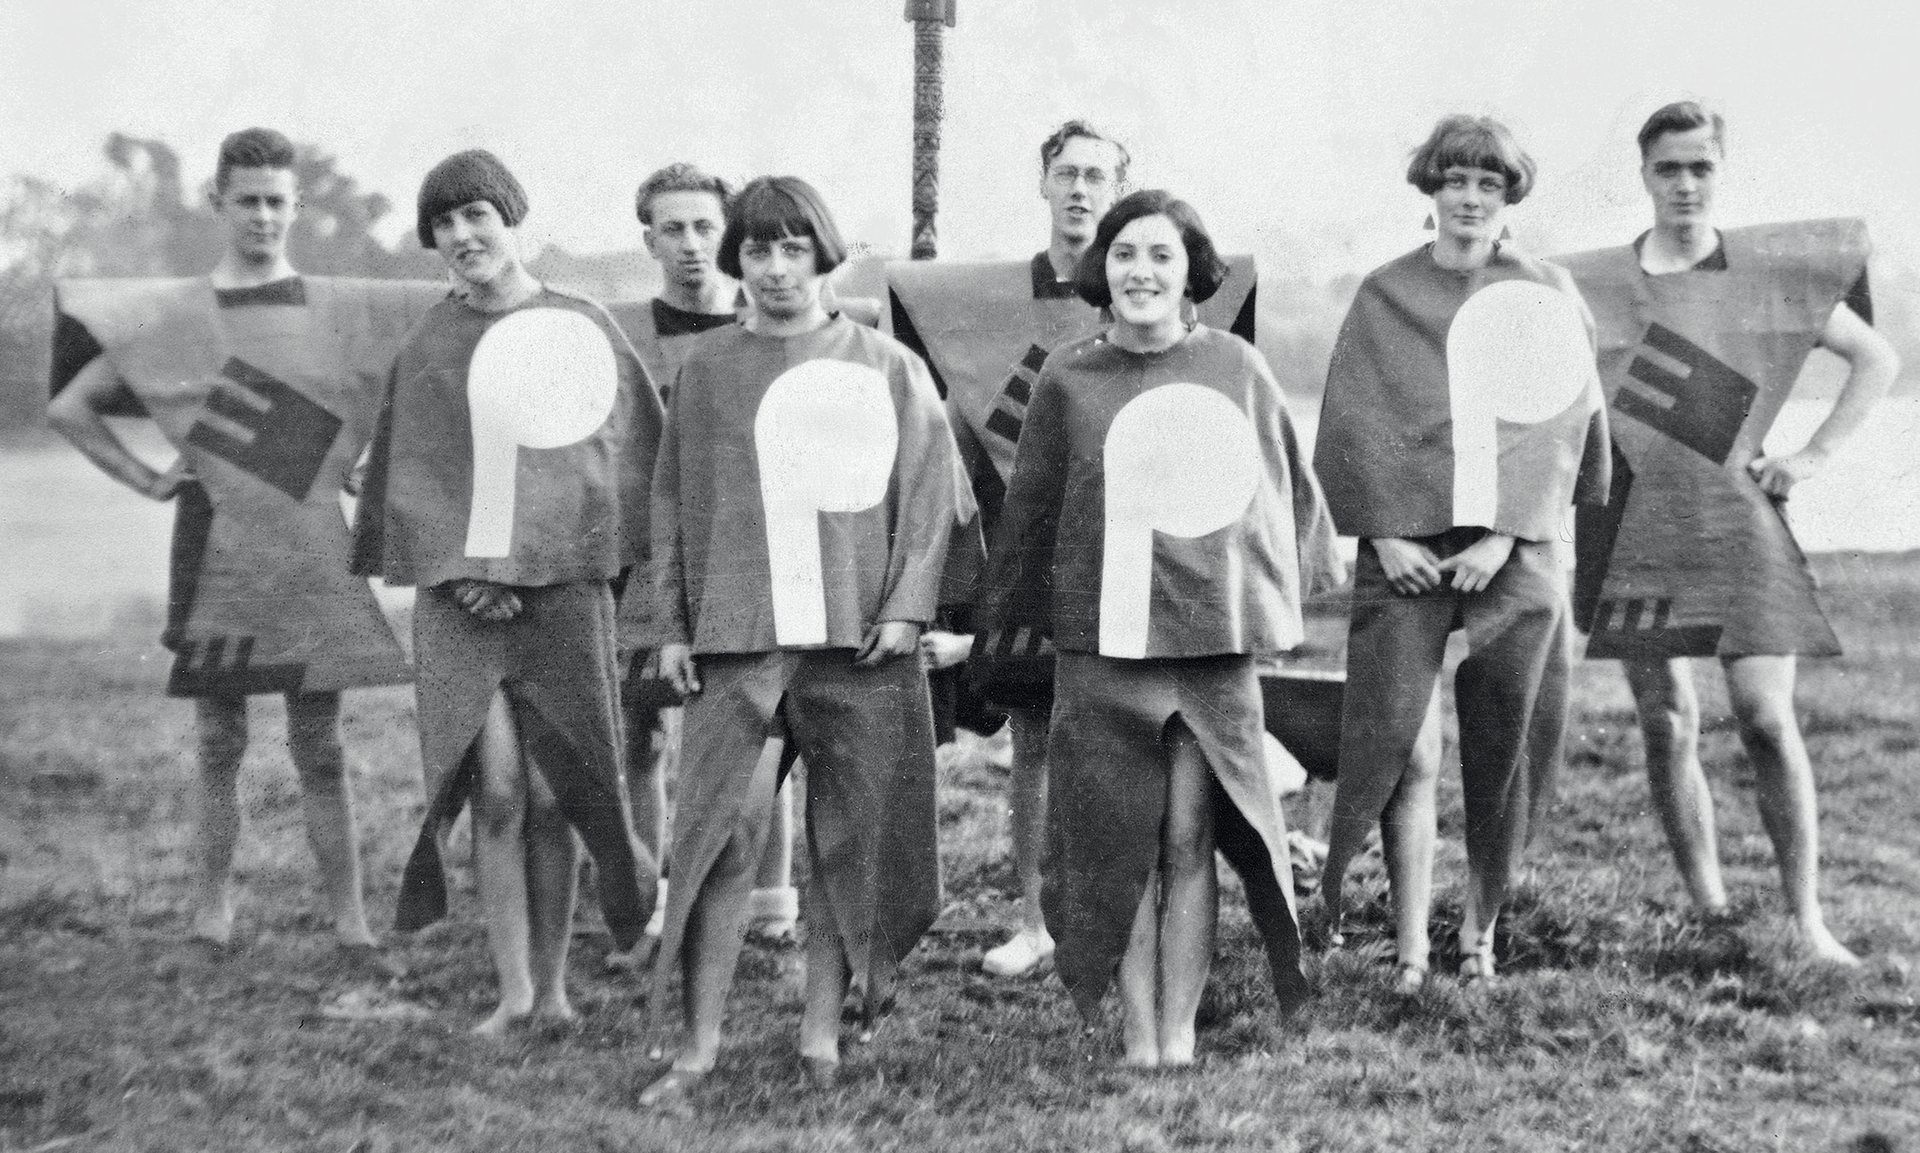 Angus McBean. Body of Gleemen and Gleemaidens at Gleemote (a Kibbo Kift Festival) 1929. Stanley Dixon Collection, thanks to Gill Dixon. Courtesy of Tim Turner.